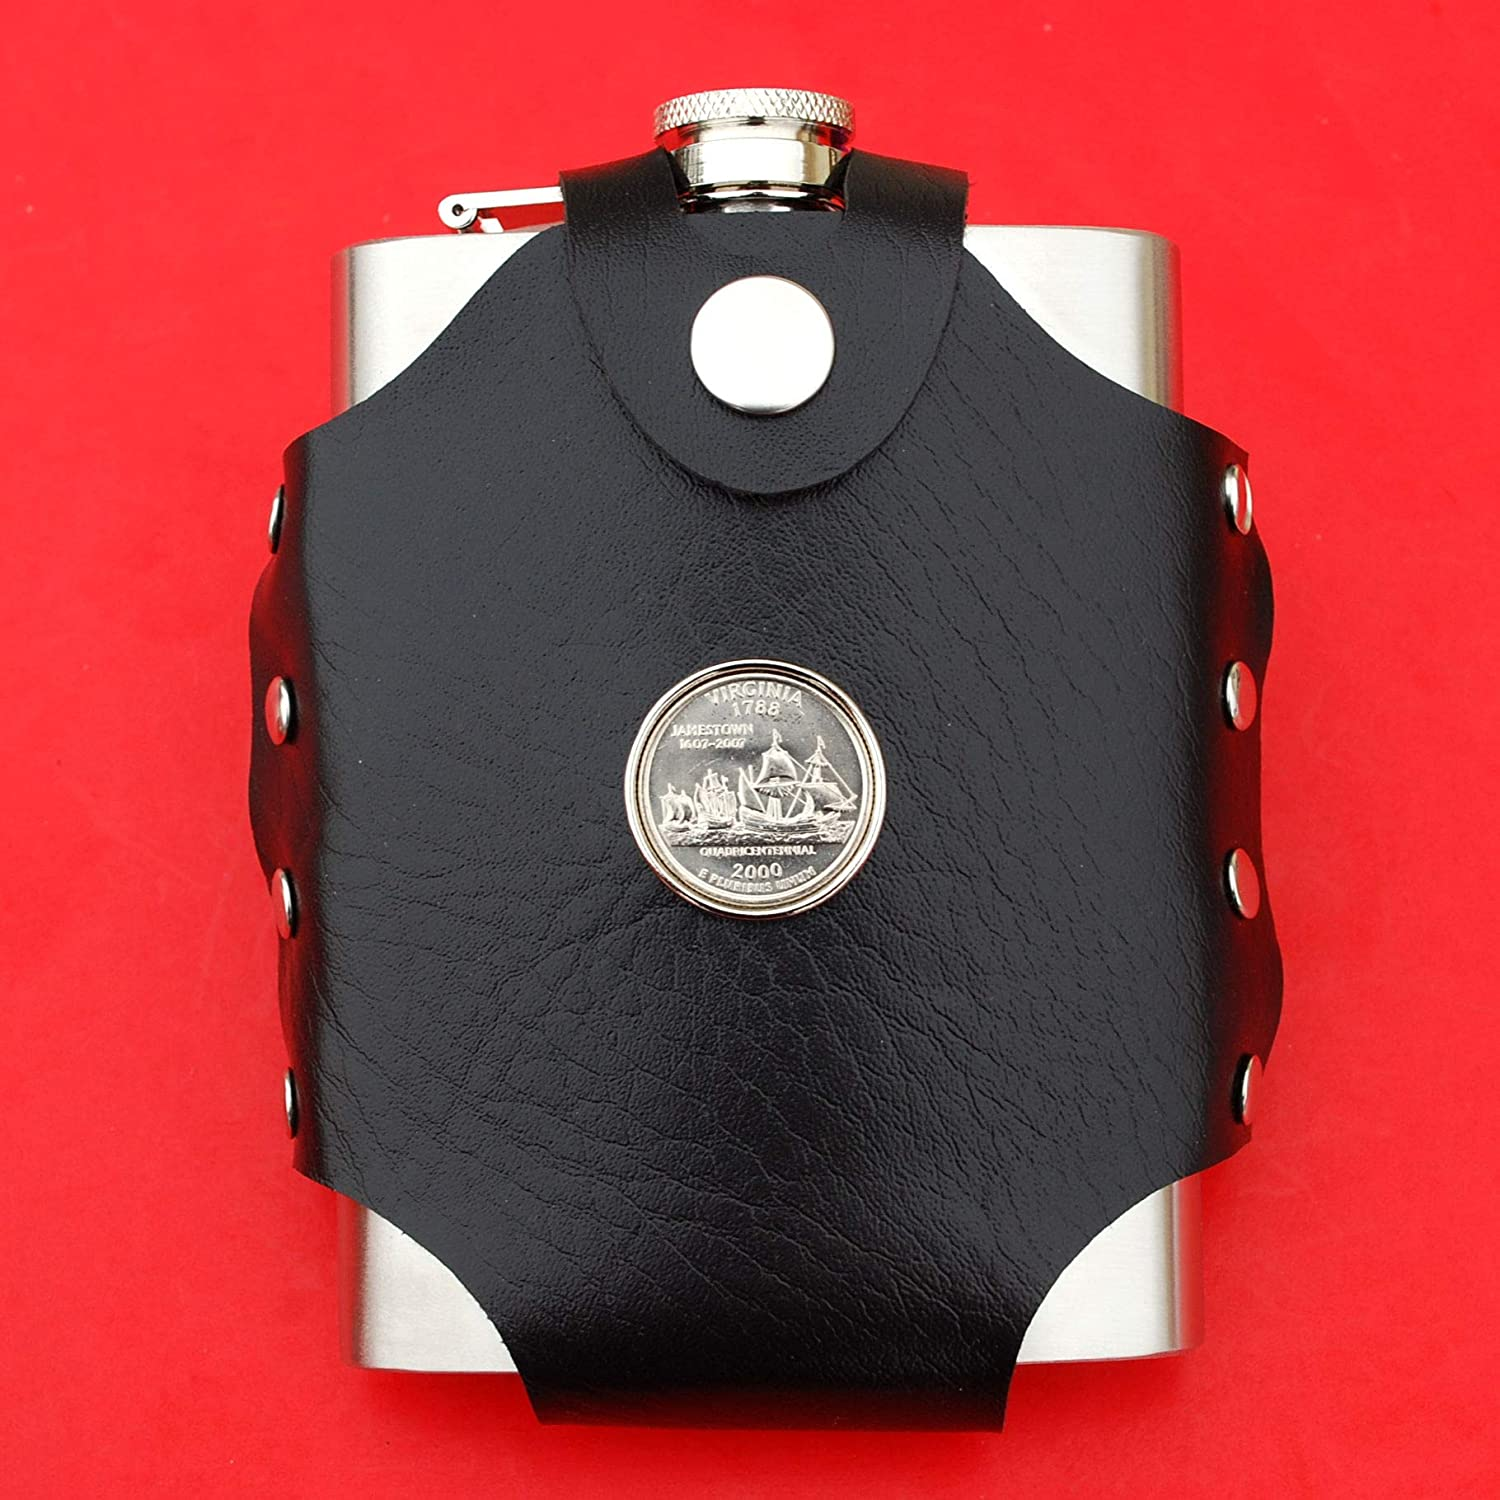 Water Liquor Wine etc. US 2000 Virginia State Quarter BU Uncirculated Coin Leak Proof Black PU Leather Wrapped Stainless Steel 8 Oz Hip Flask